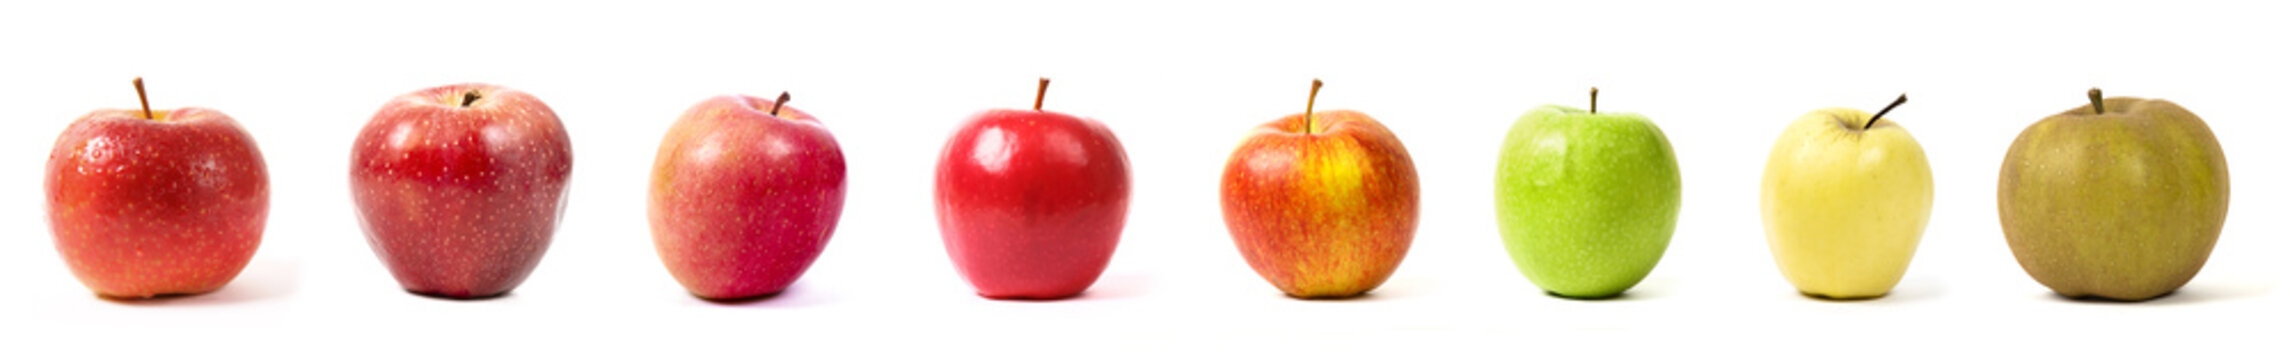 different apple varieties on white background